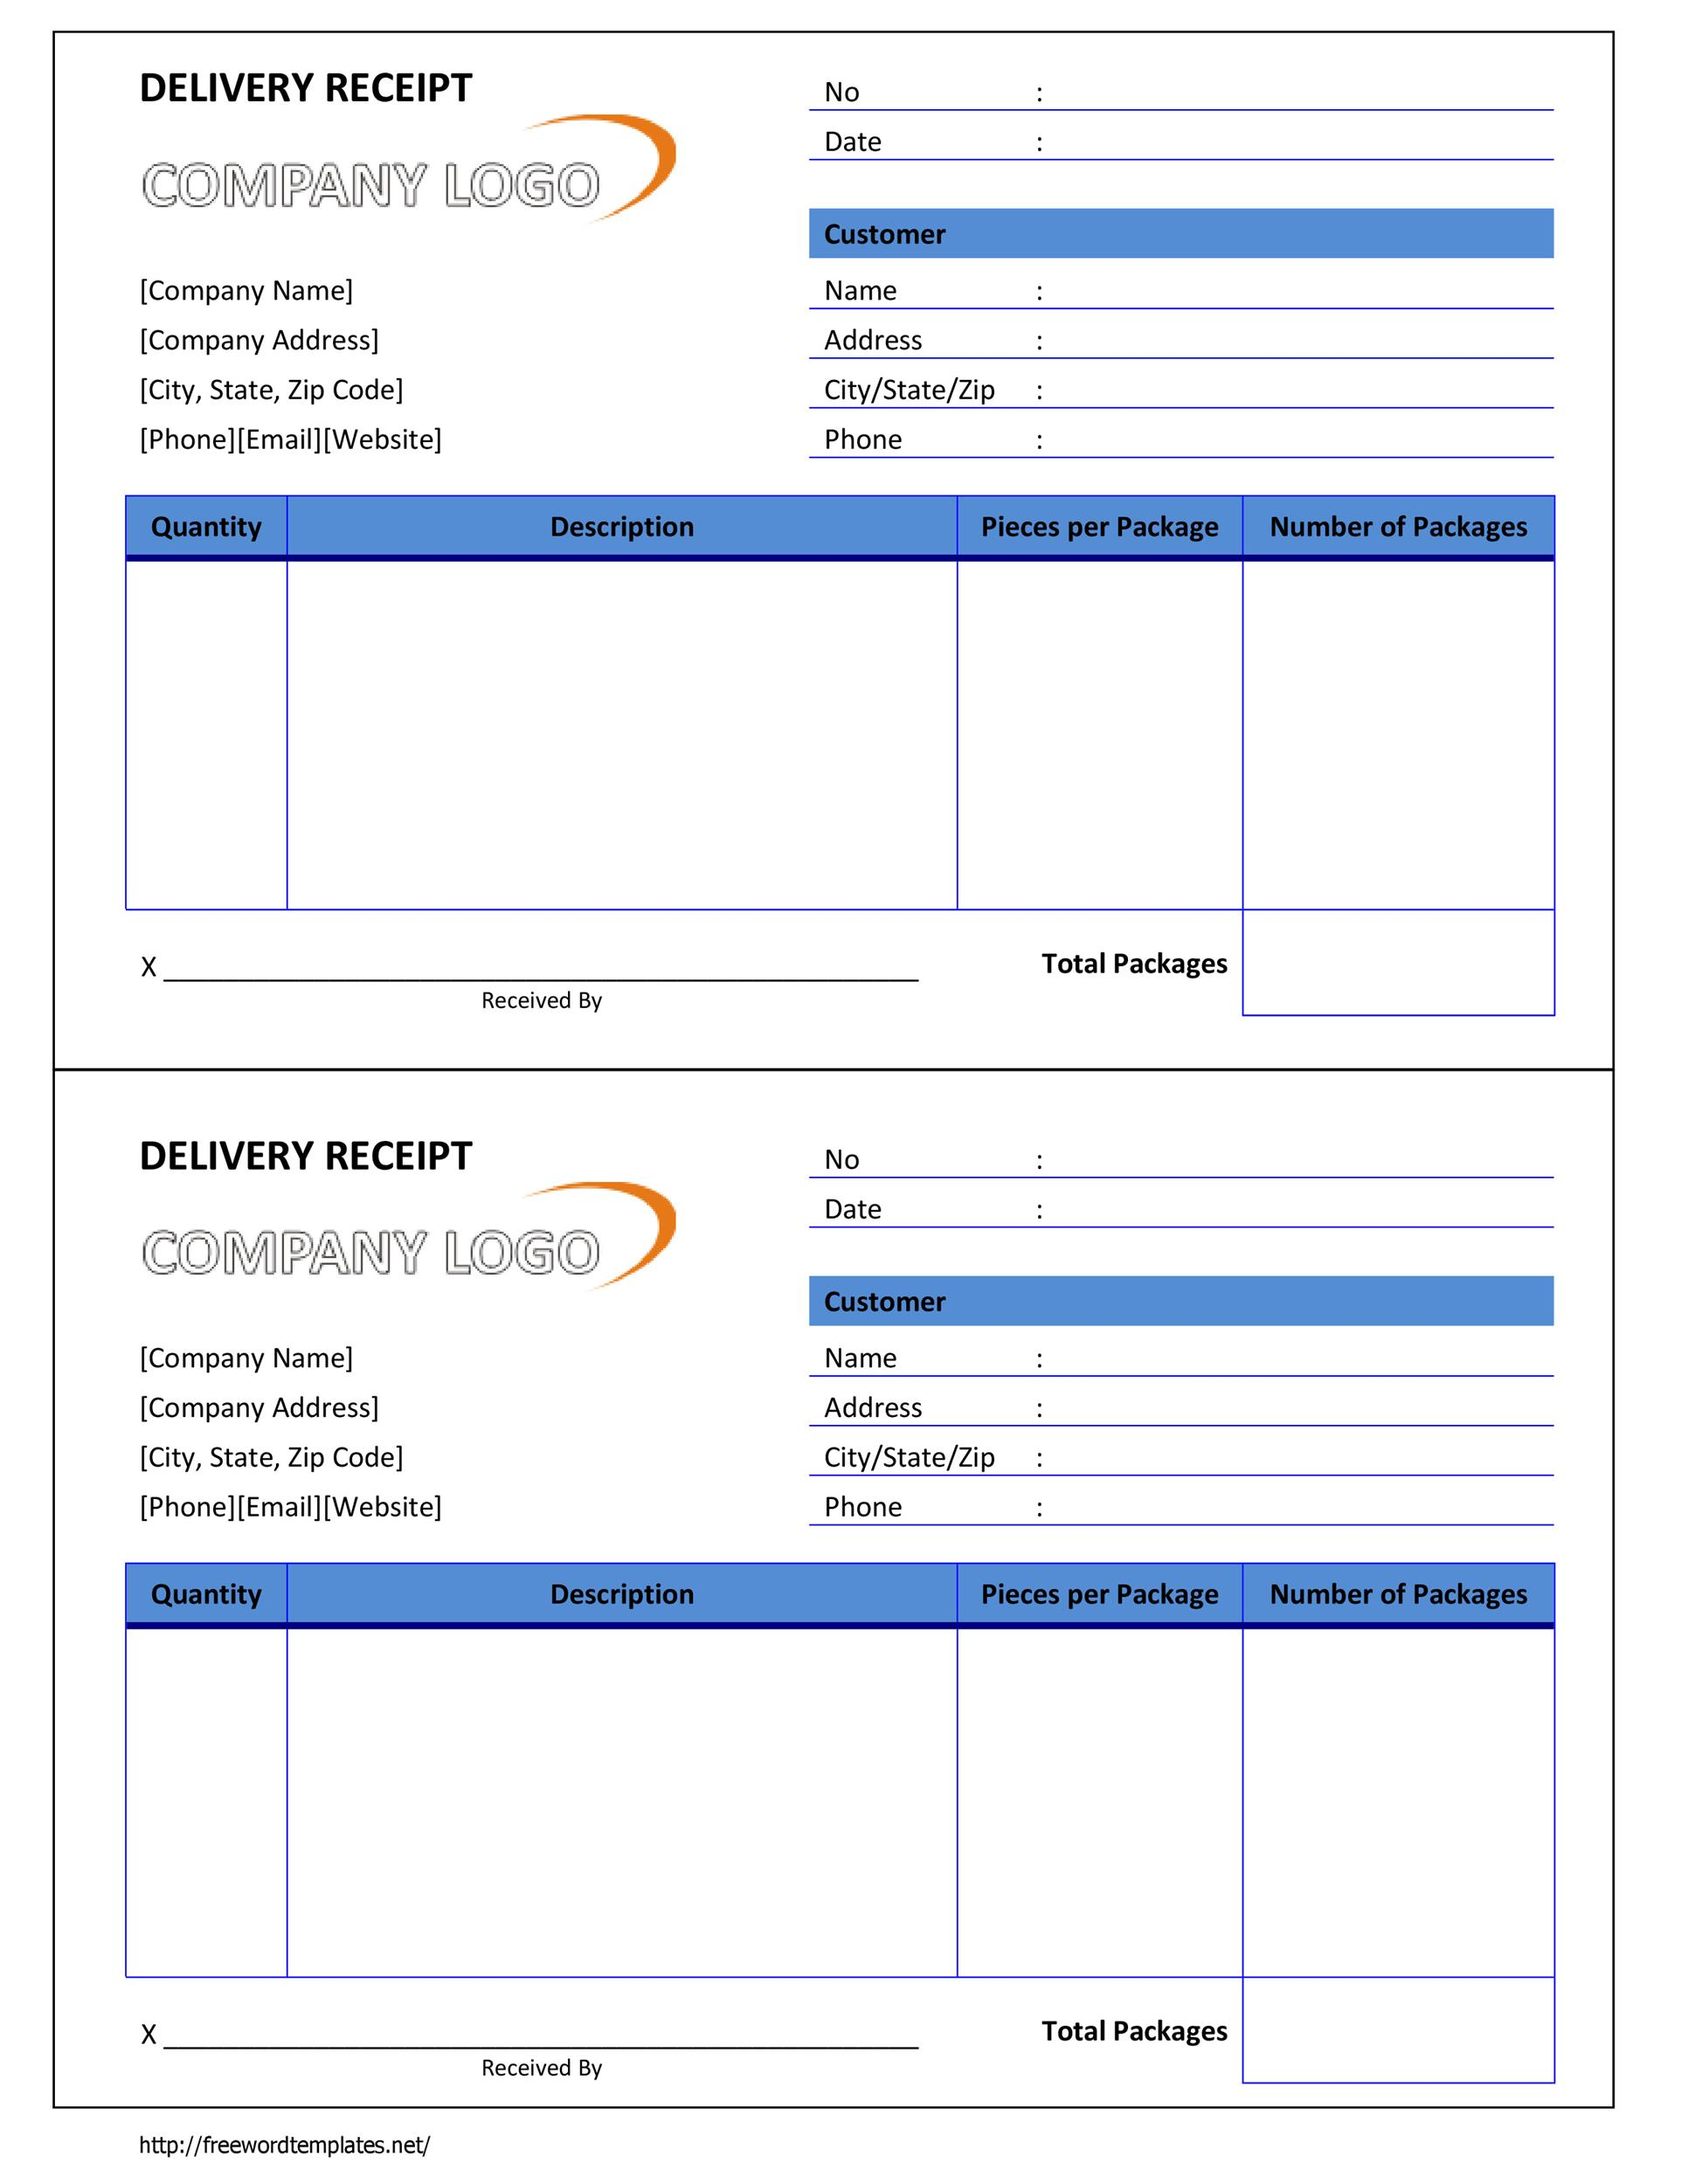 50 Free Receipt Templates Cash Sales Donation Taxi – Shipping Slip Template